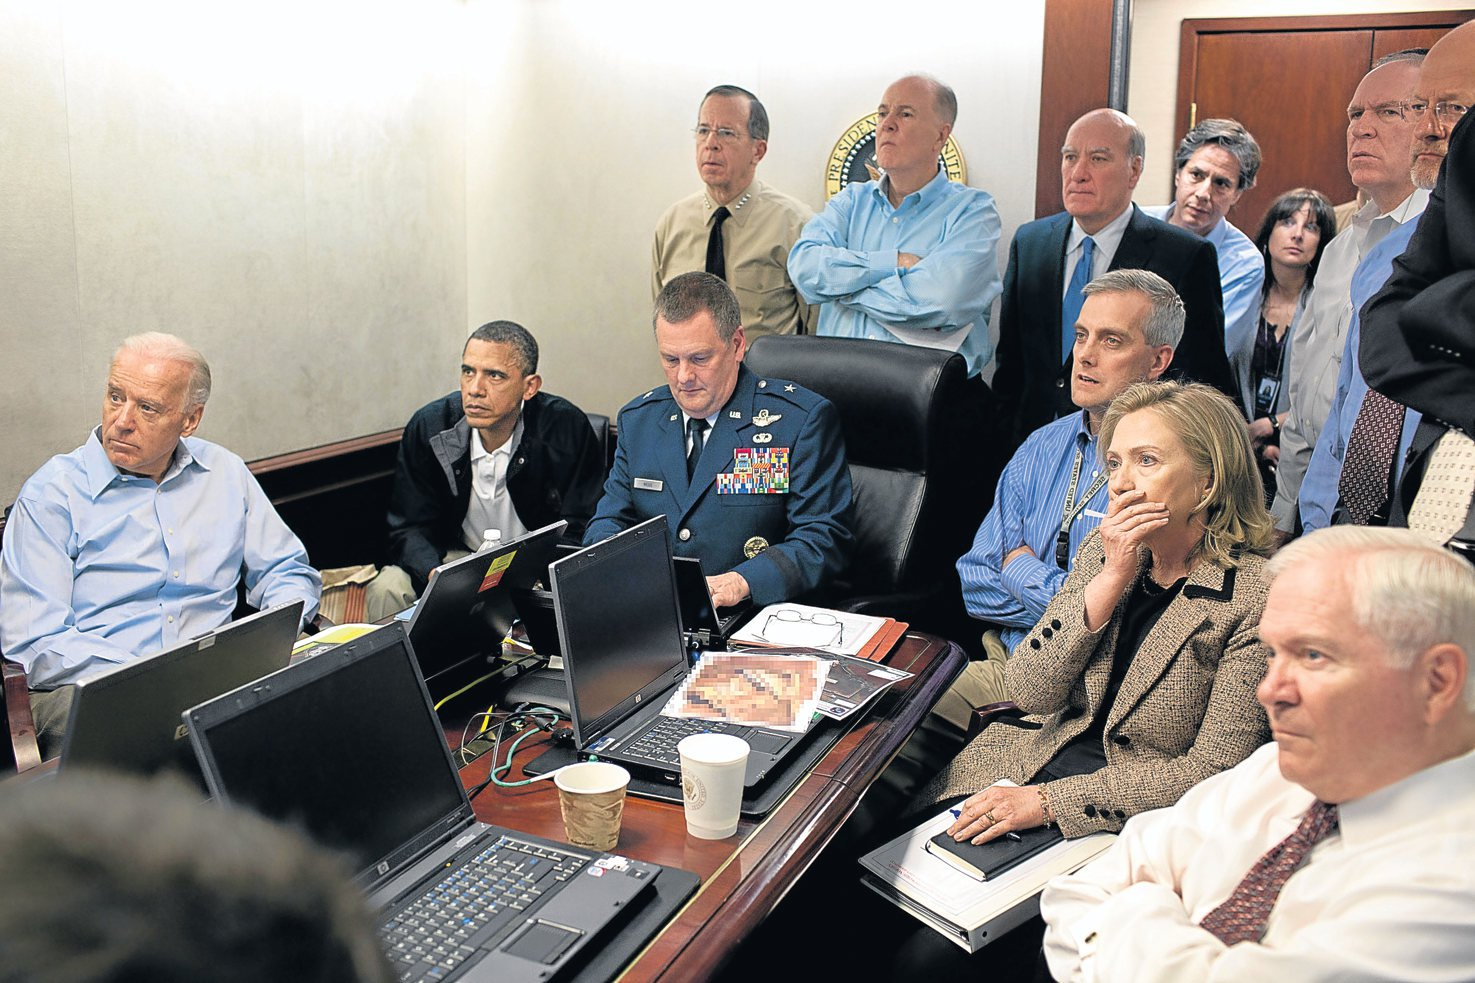 04_situation-room